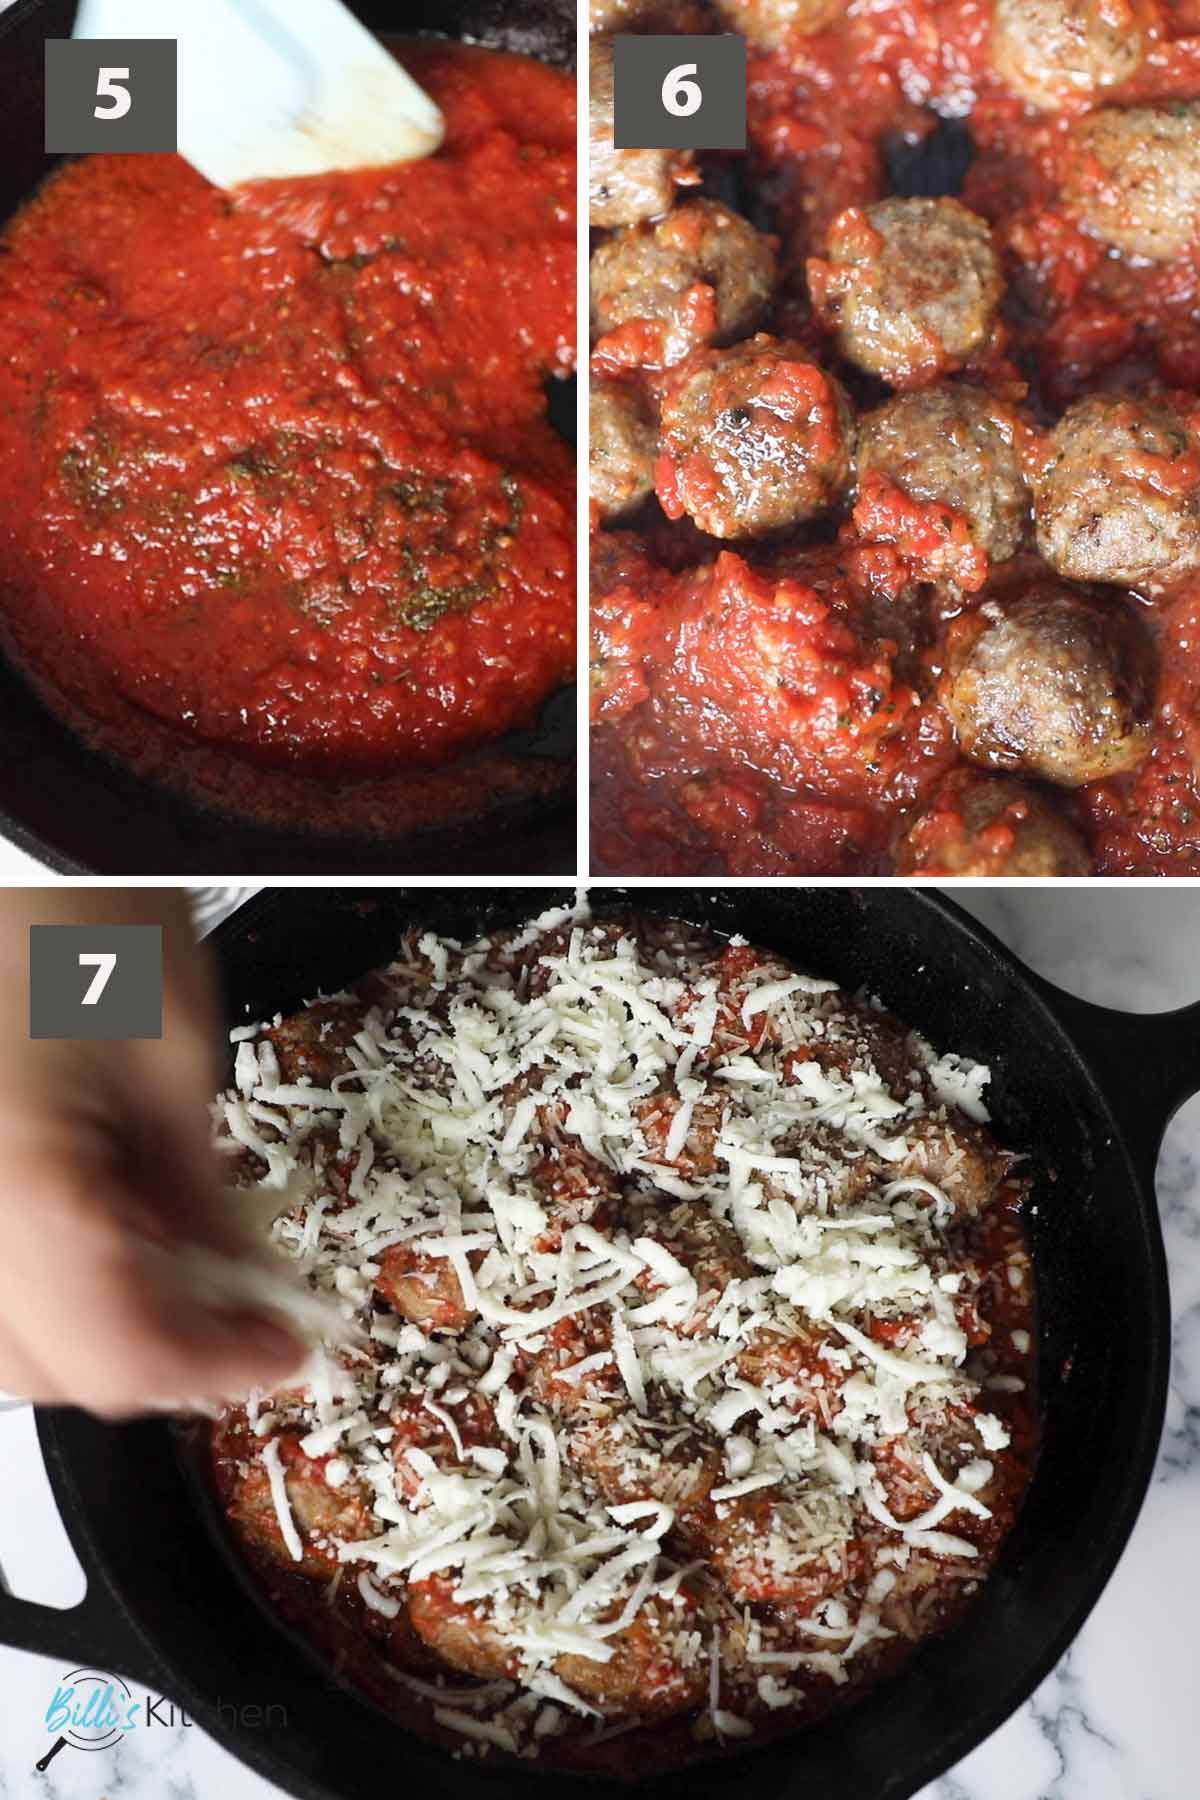 Second part of a collage of images showing the step by step process on how to cook meatballs in the oven.